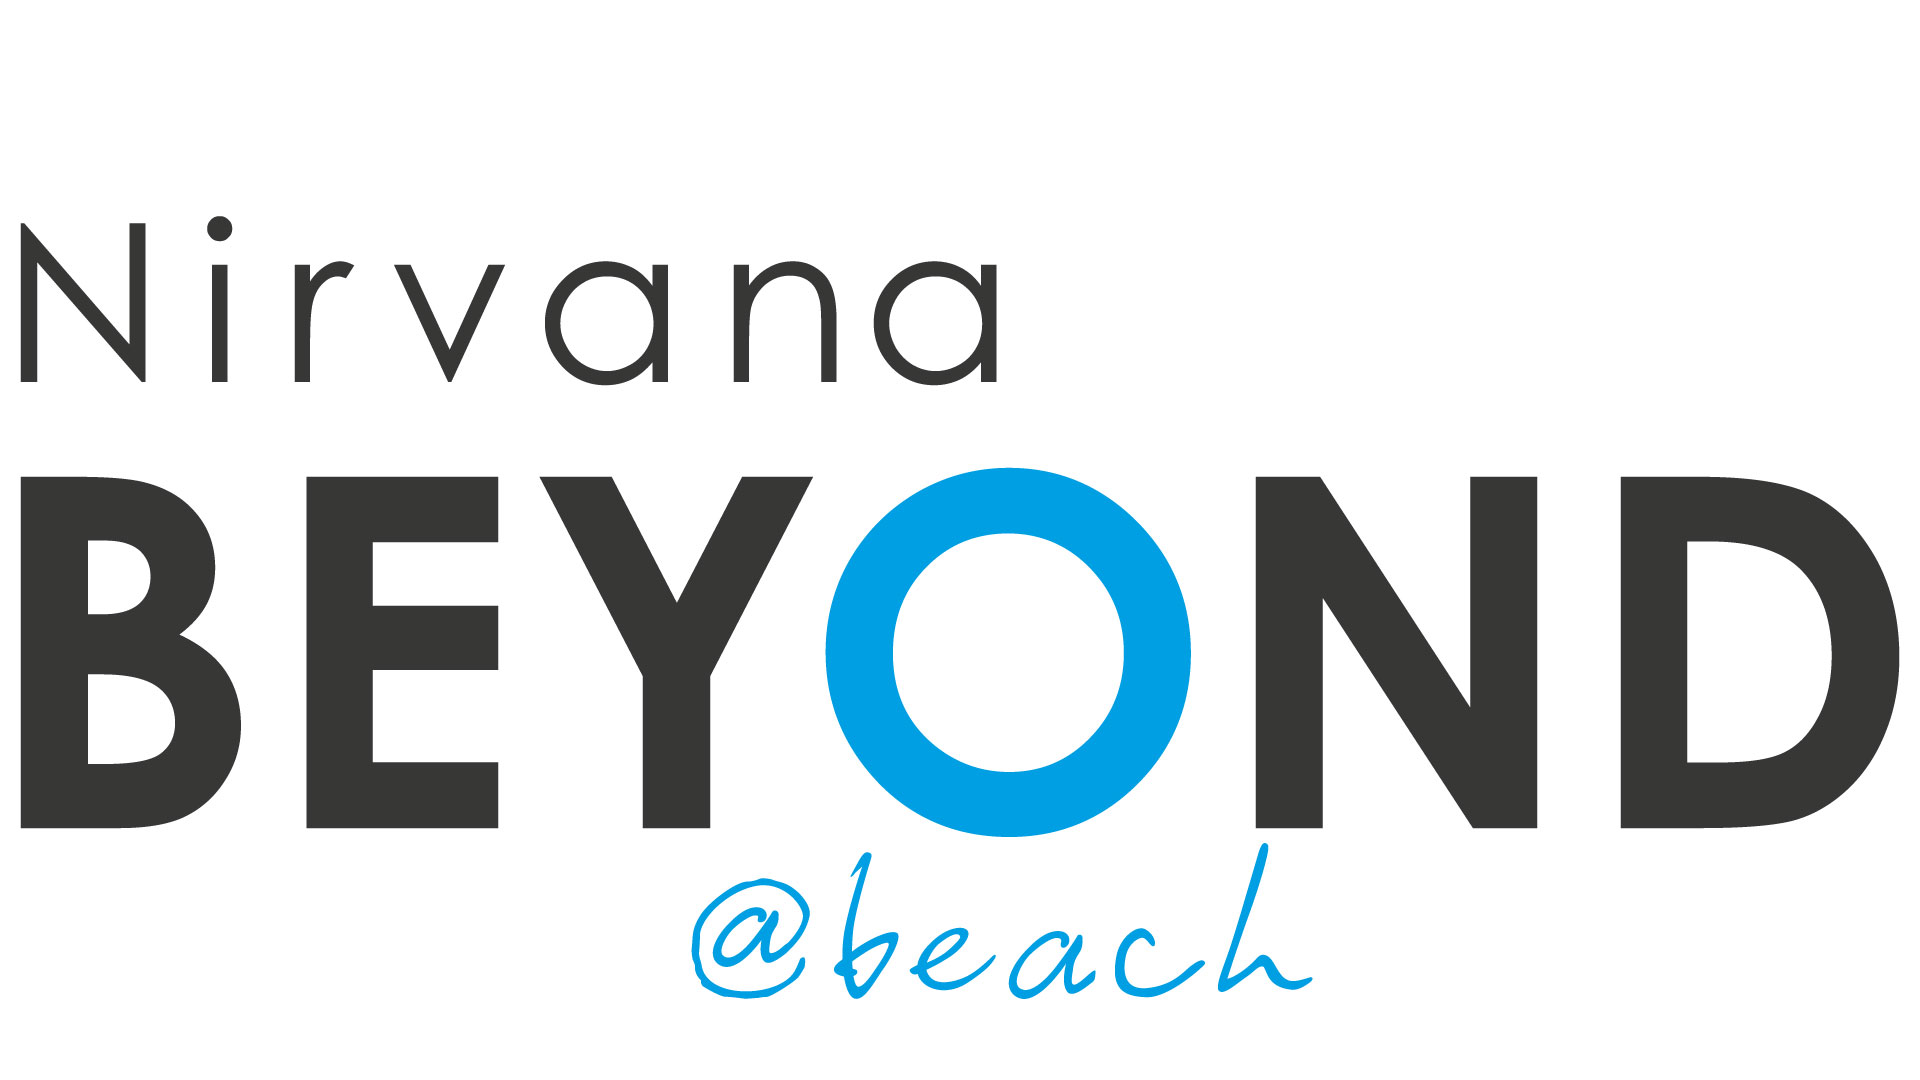 Nirvana Beyond-Beyond @Beach Pattaya Logo